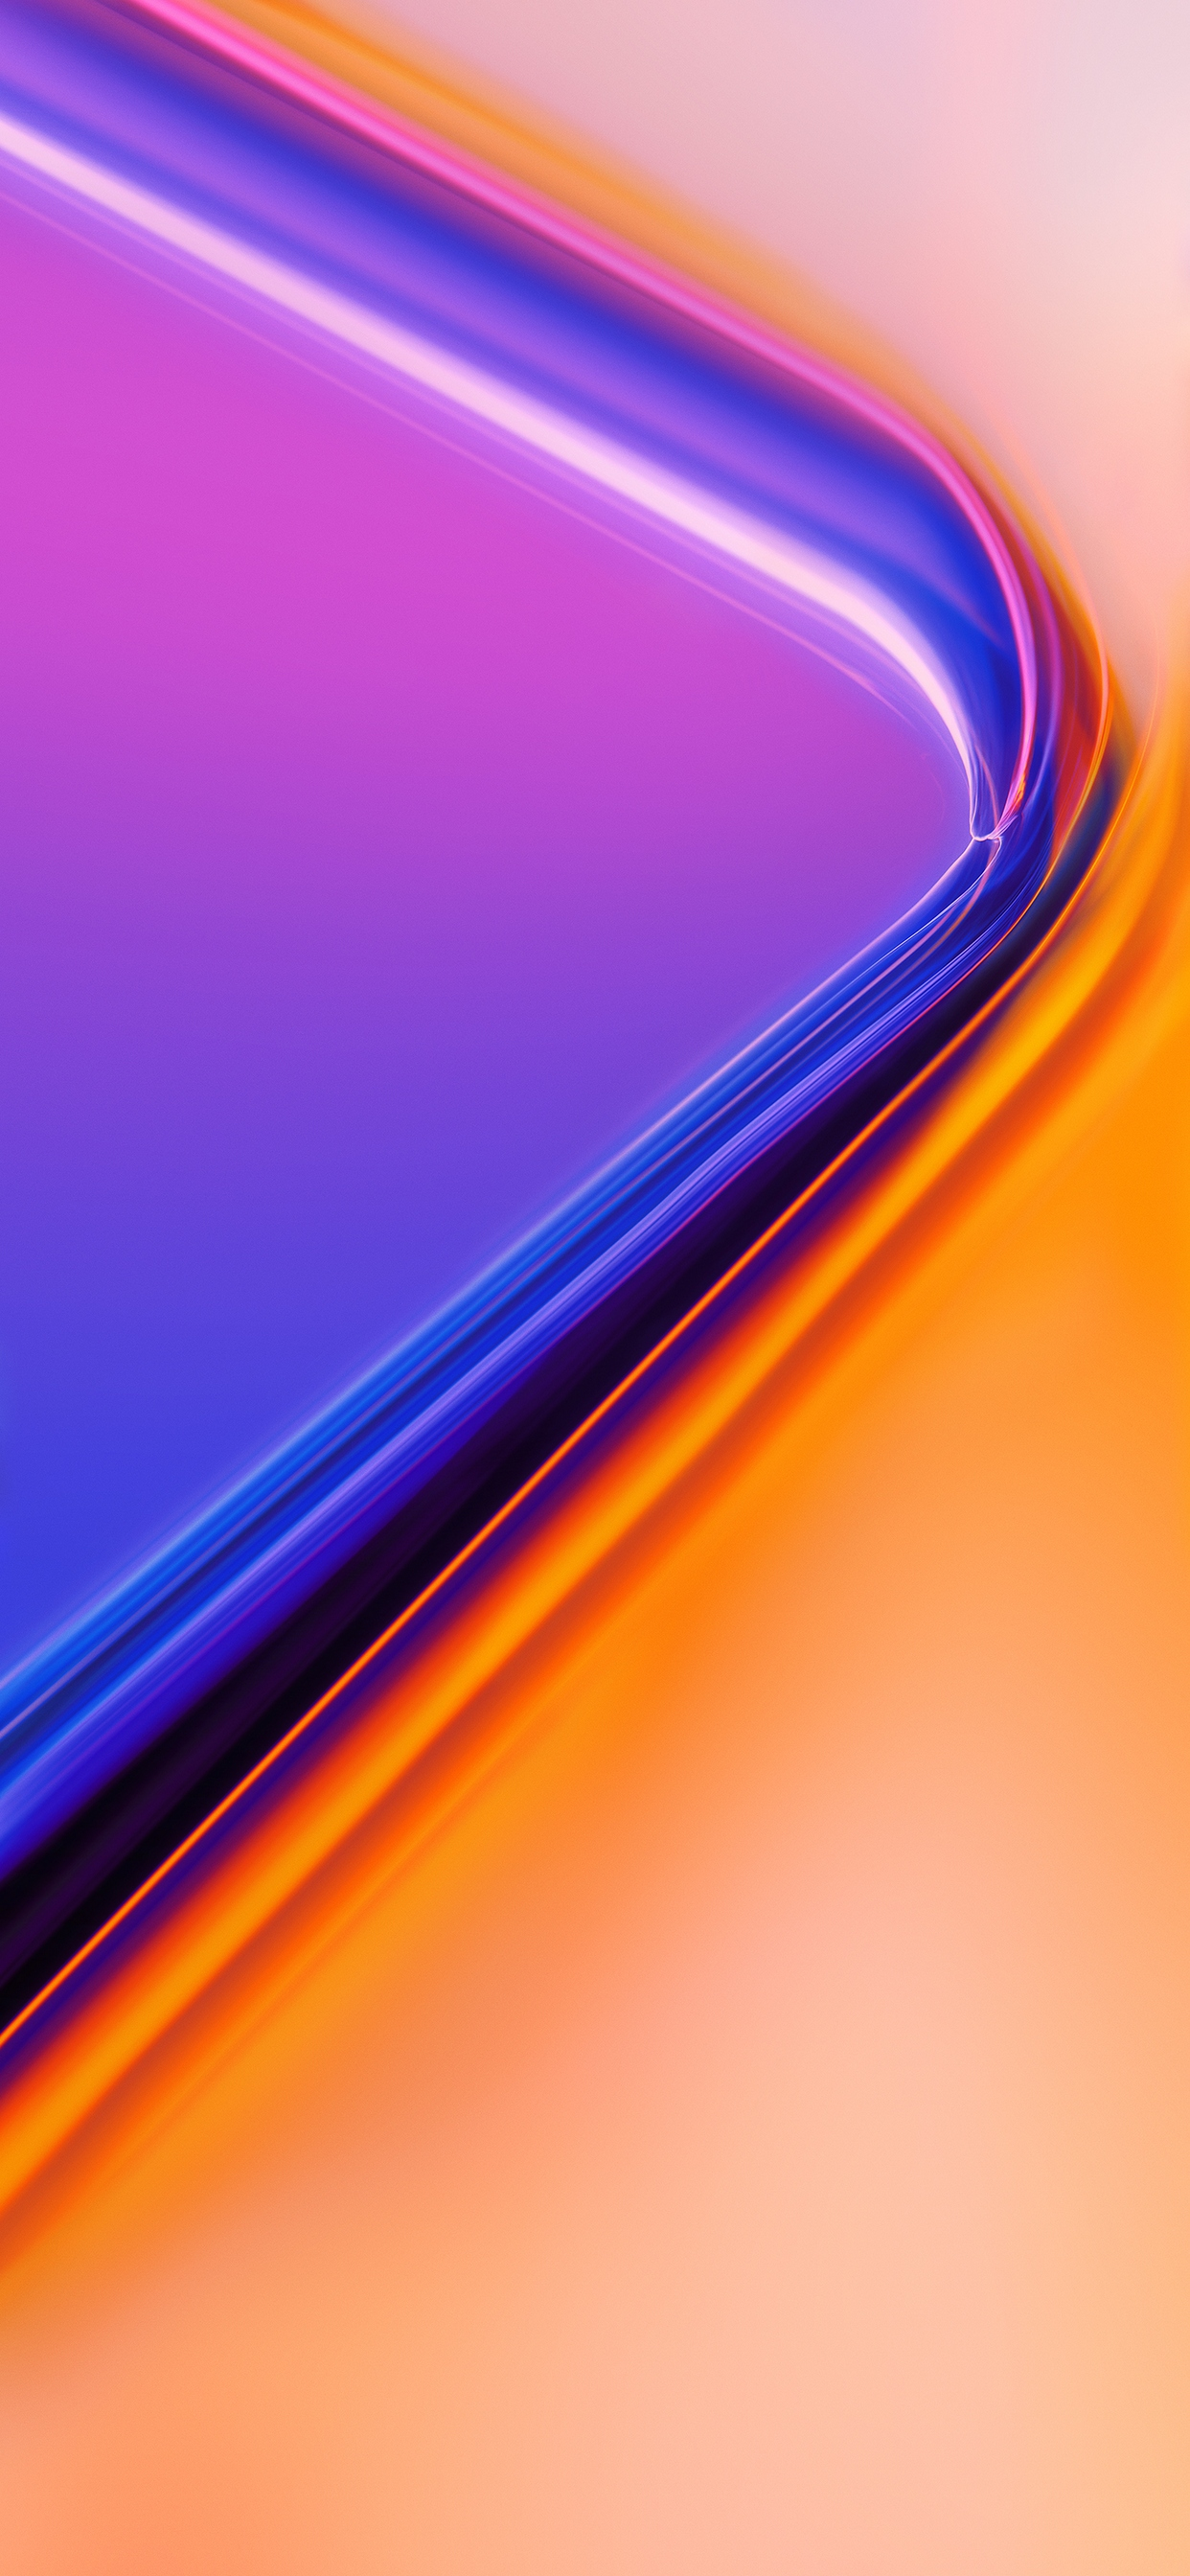 iPhone Xs Max OnePlus 7 Wallpapers 2